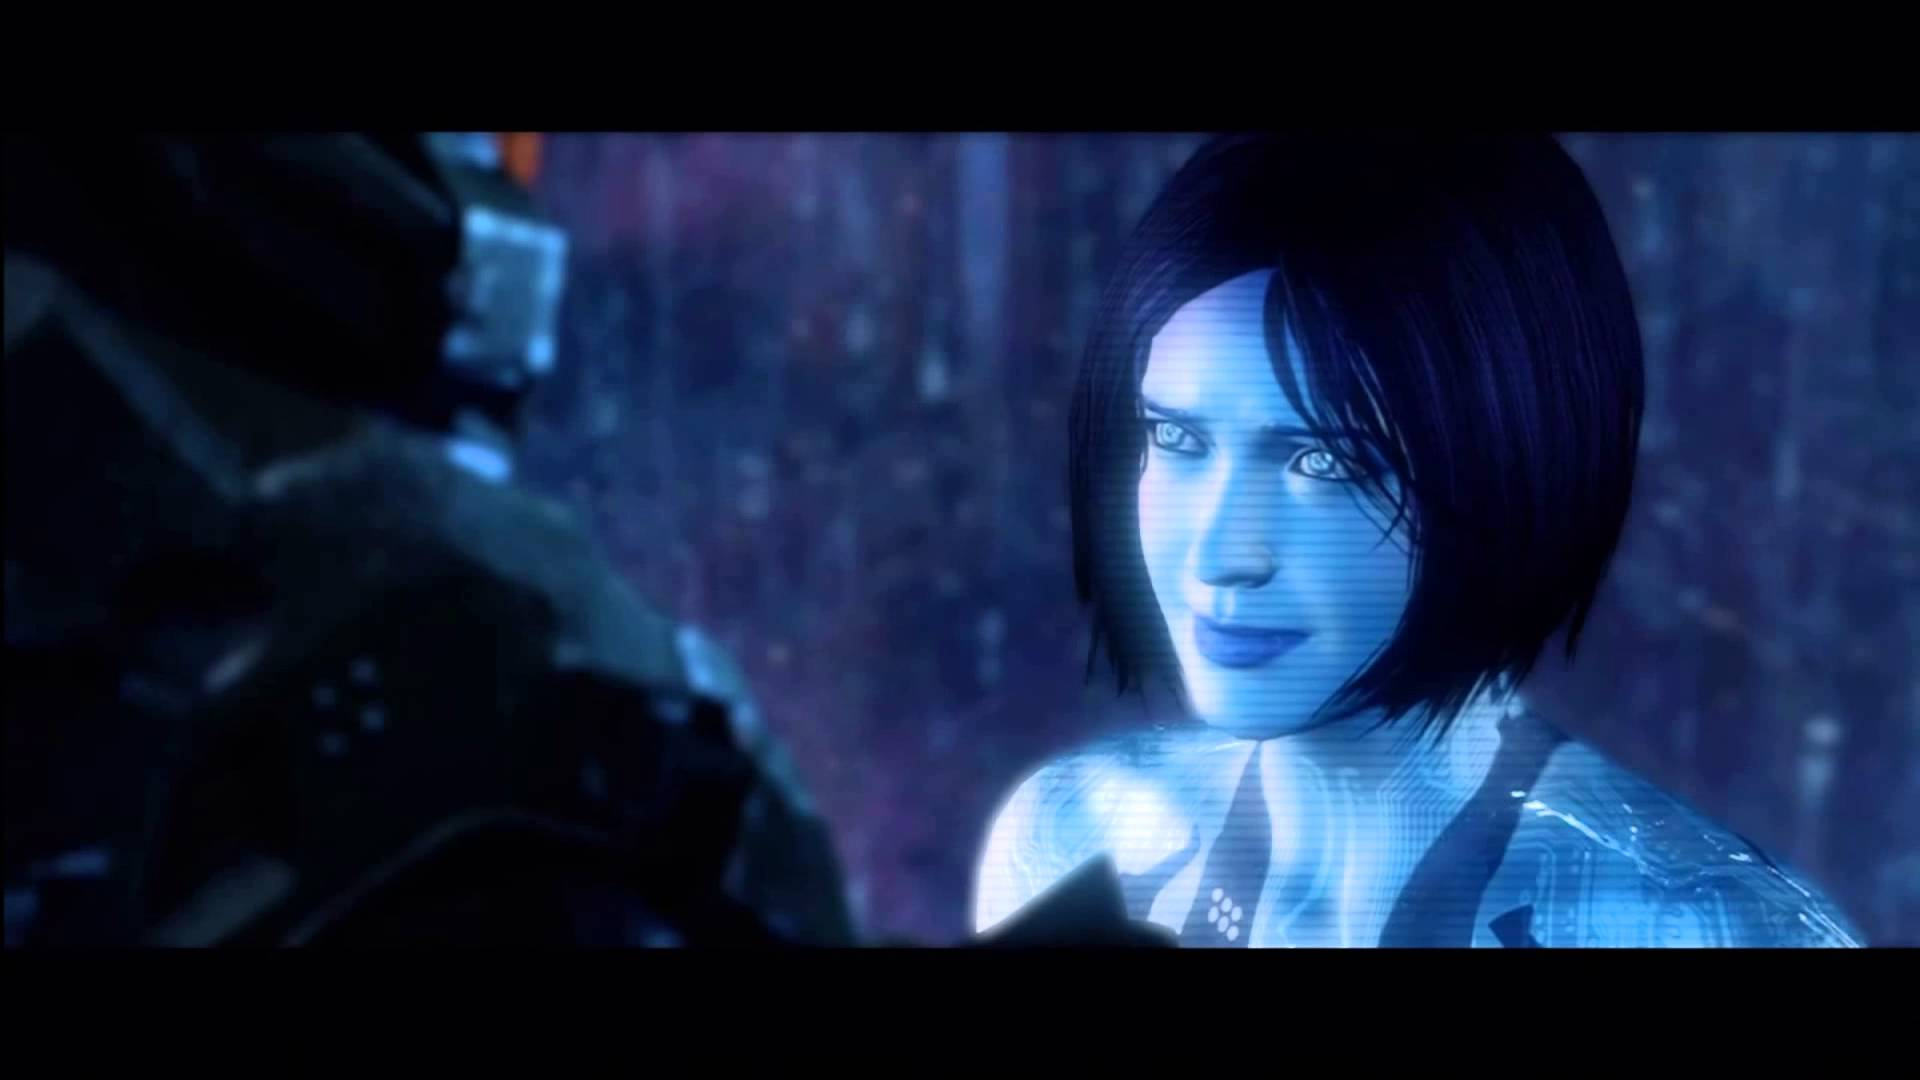 Halo 4 Cortana Wallpapers Hd Wallpapers backgrounds Download 1920x1080